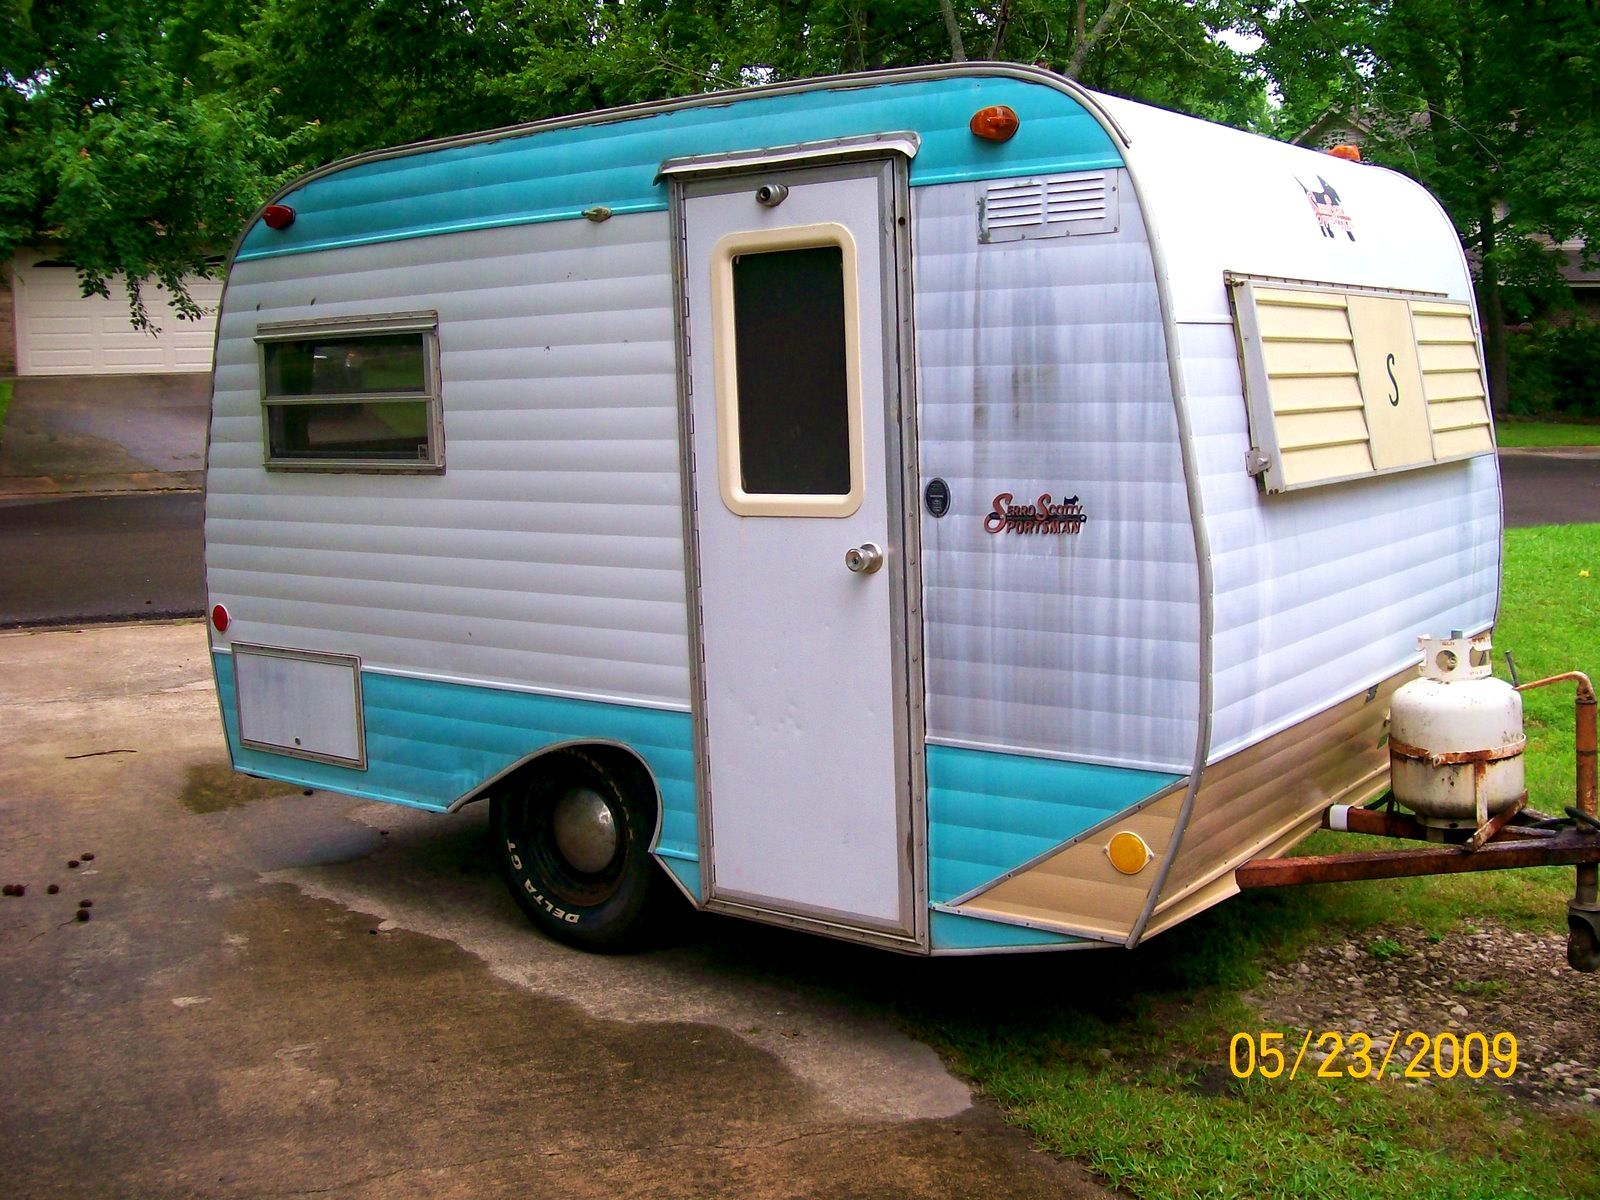 Climbing Pleasing Images About Vintage Camper Inspiration Jayco